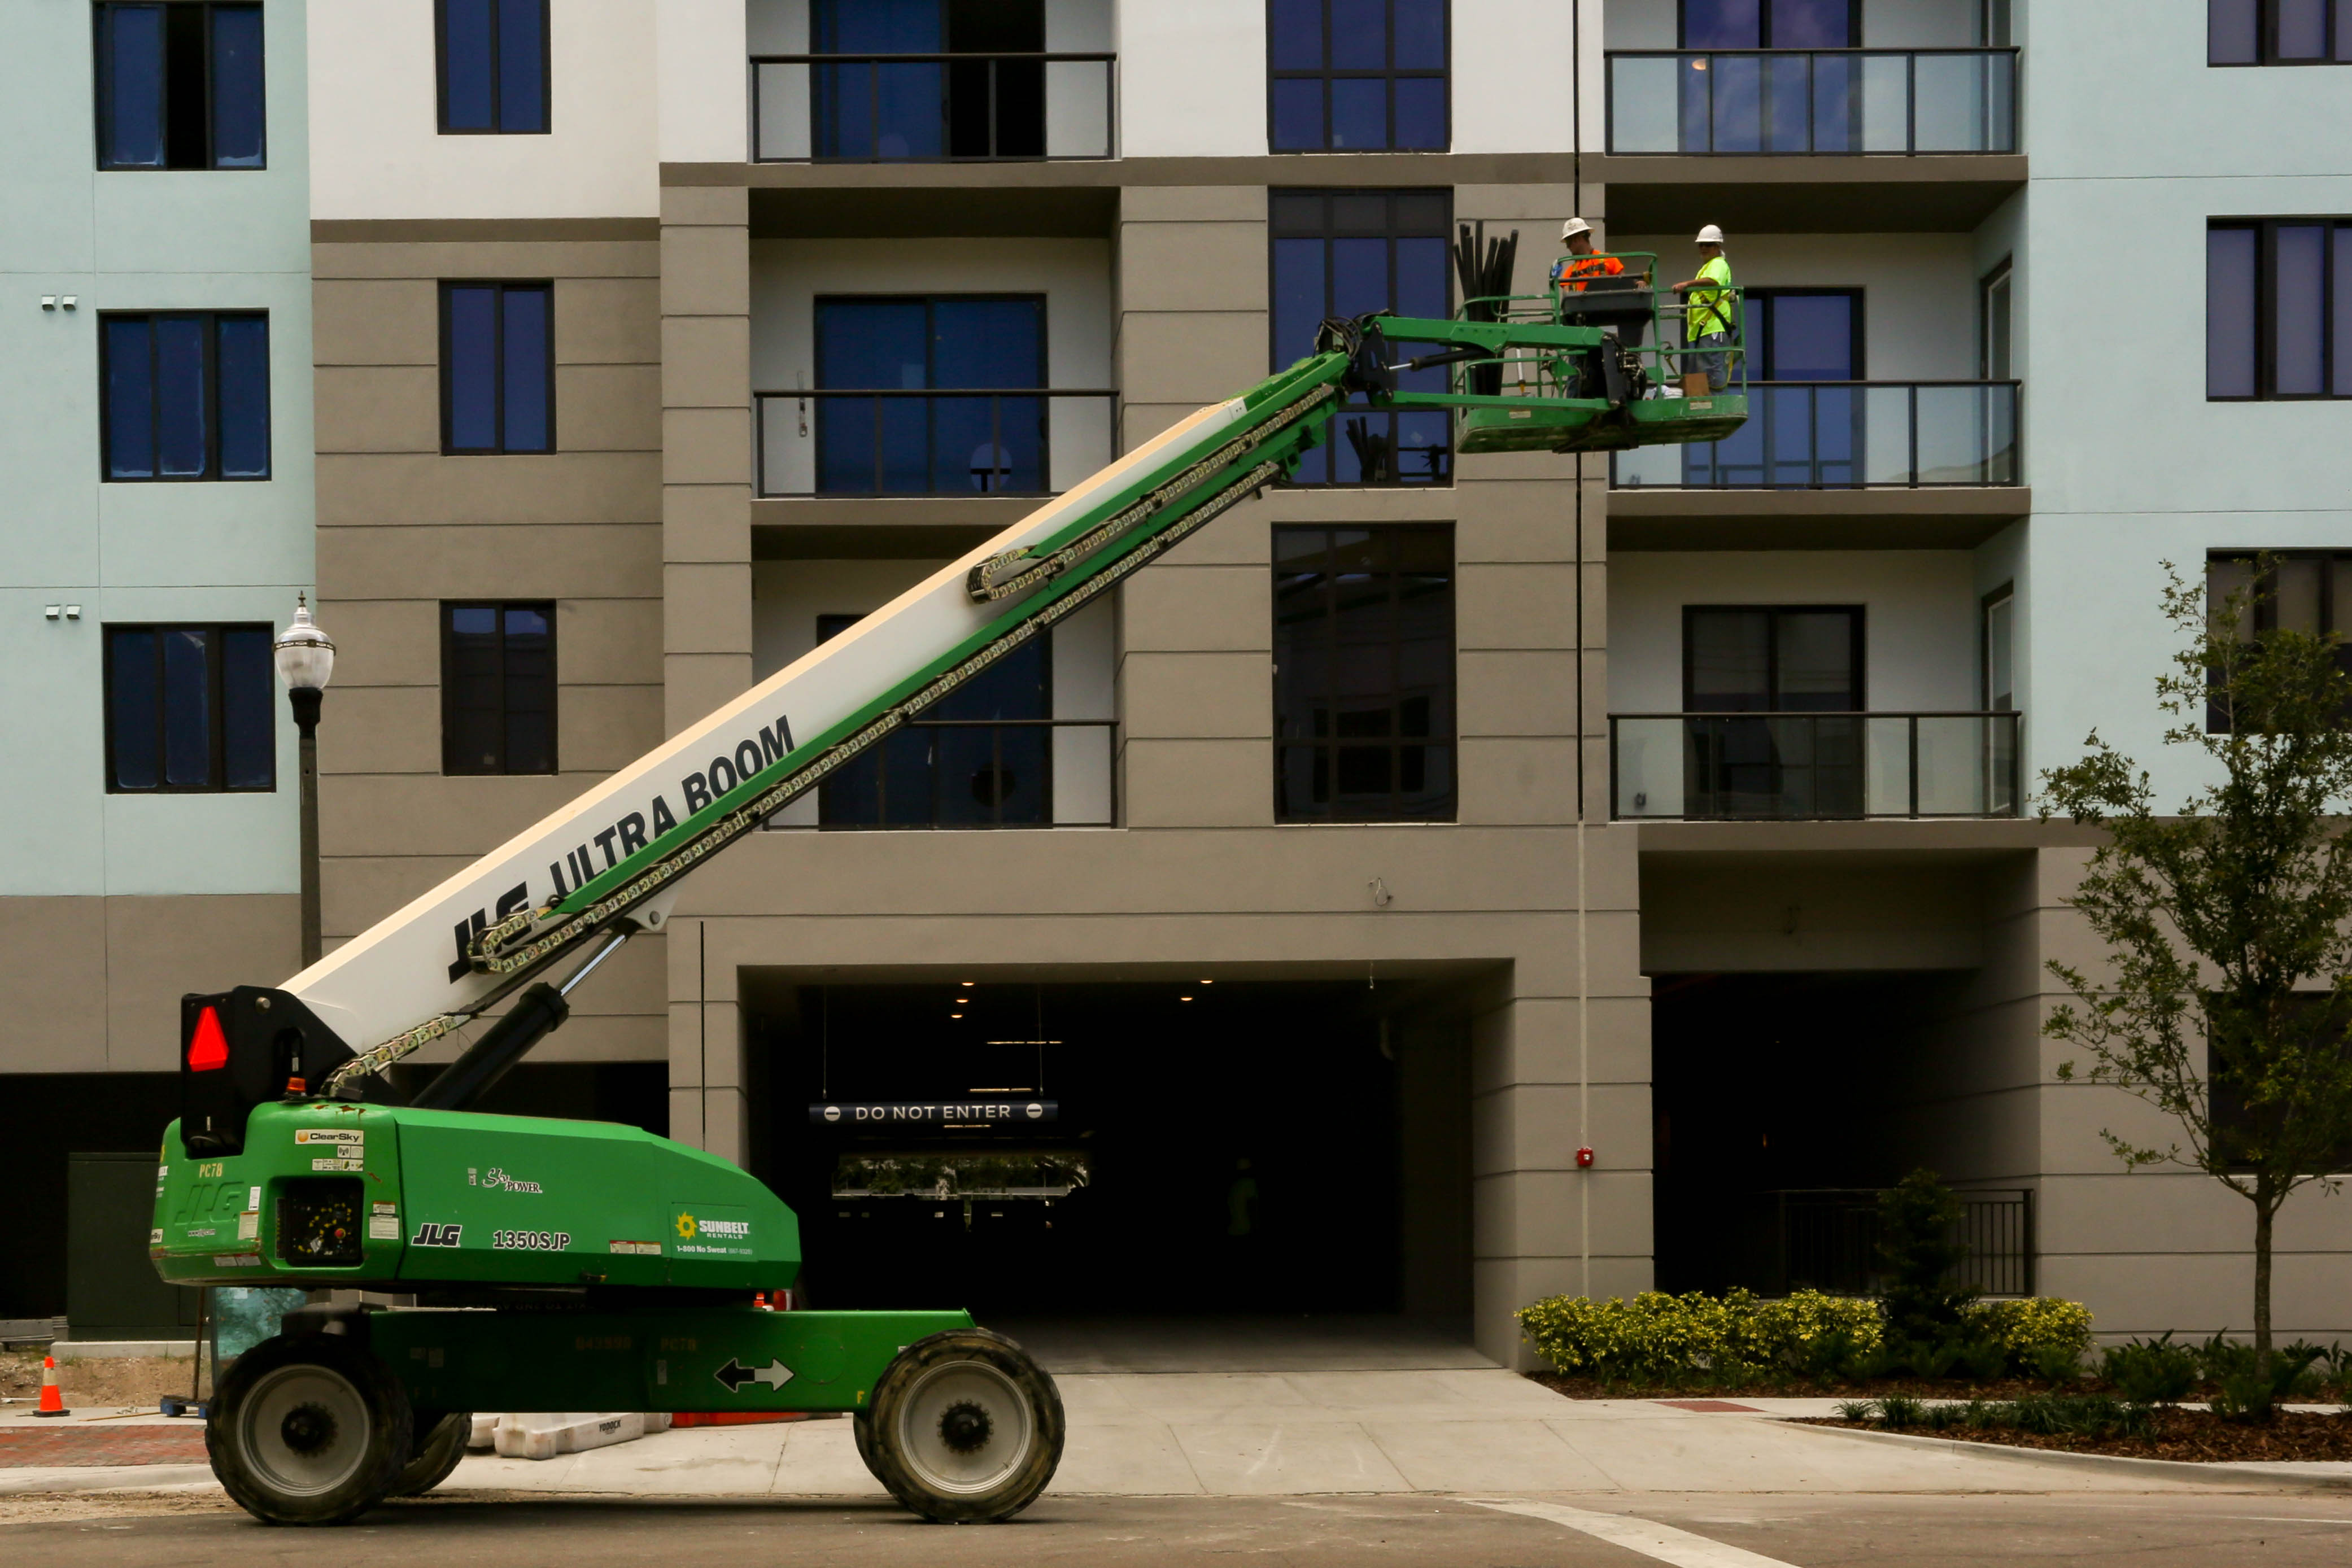 Construction in Tampa Bay is booming, right? Actually, it's